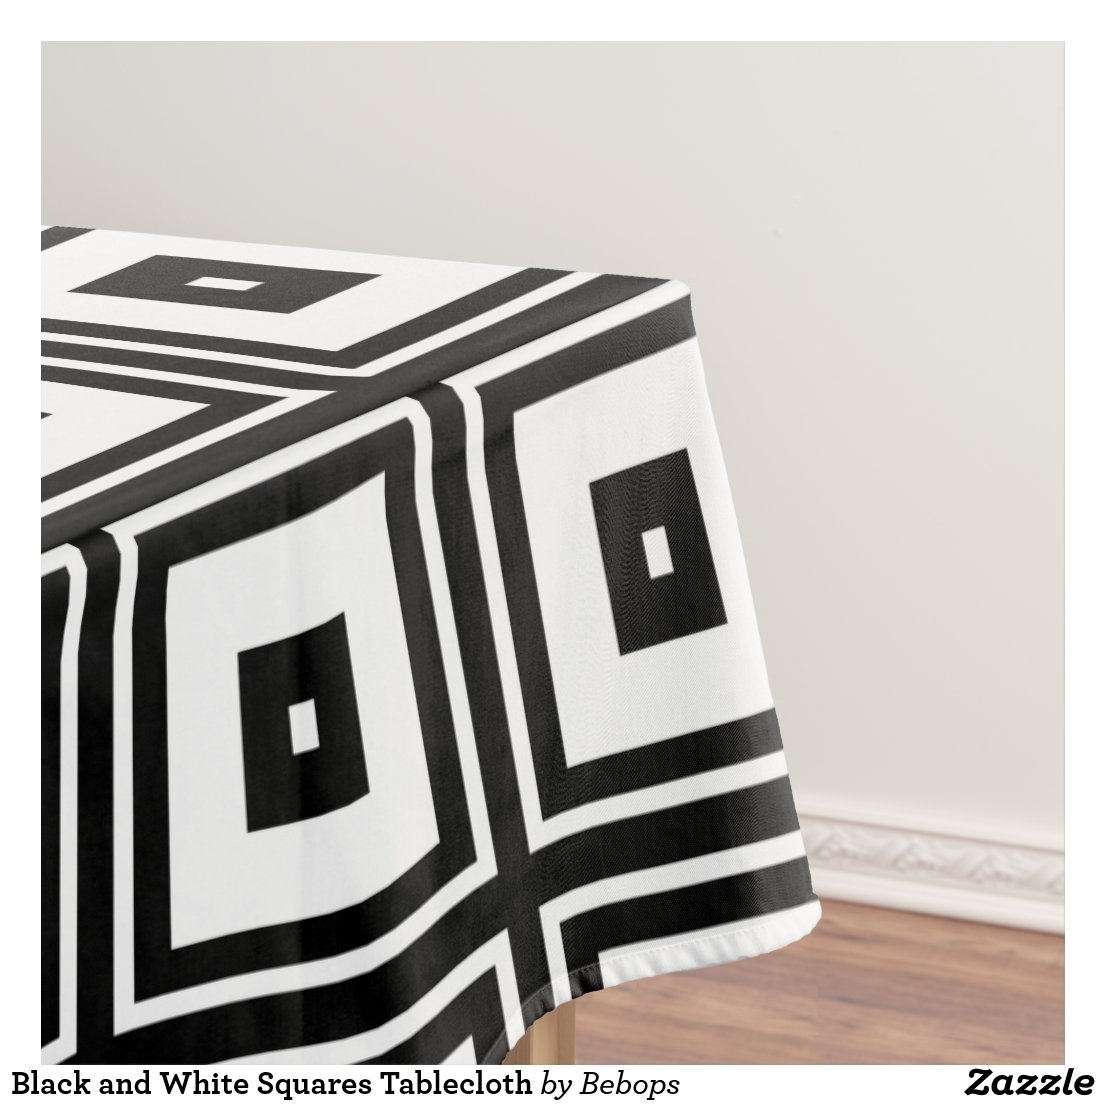 Black and White Squares Tablecloth